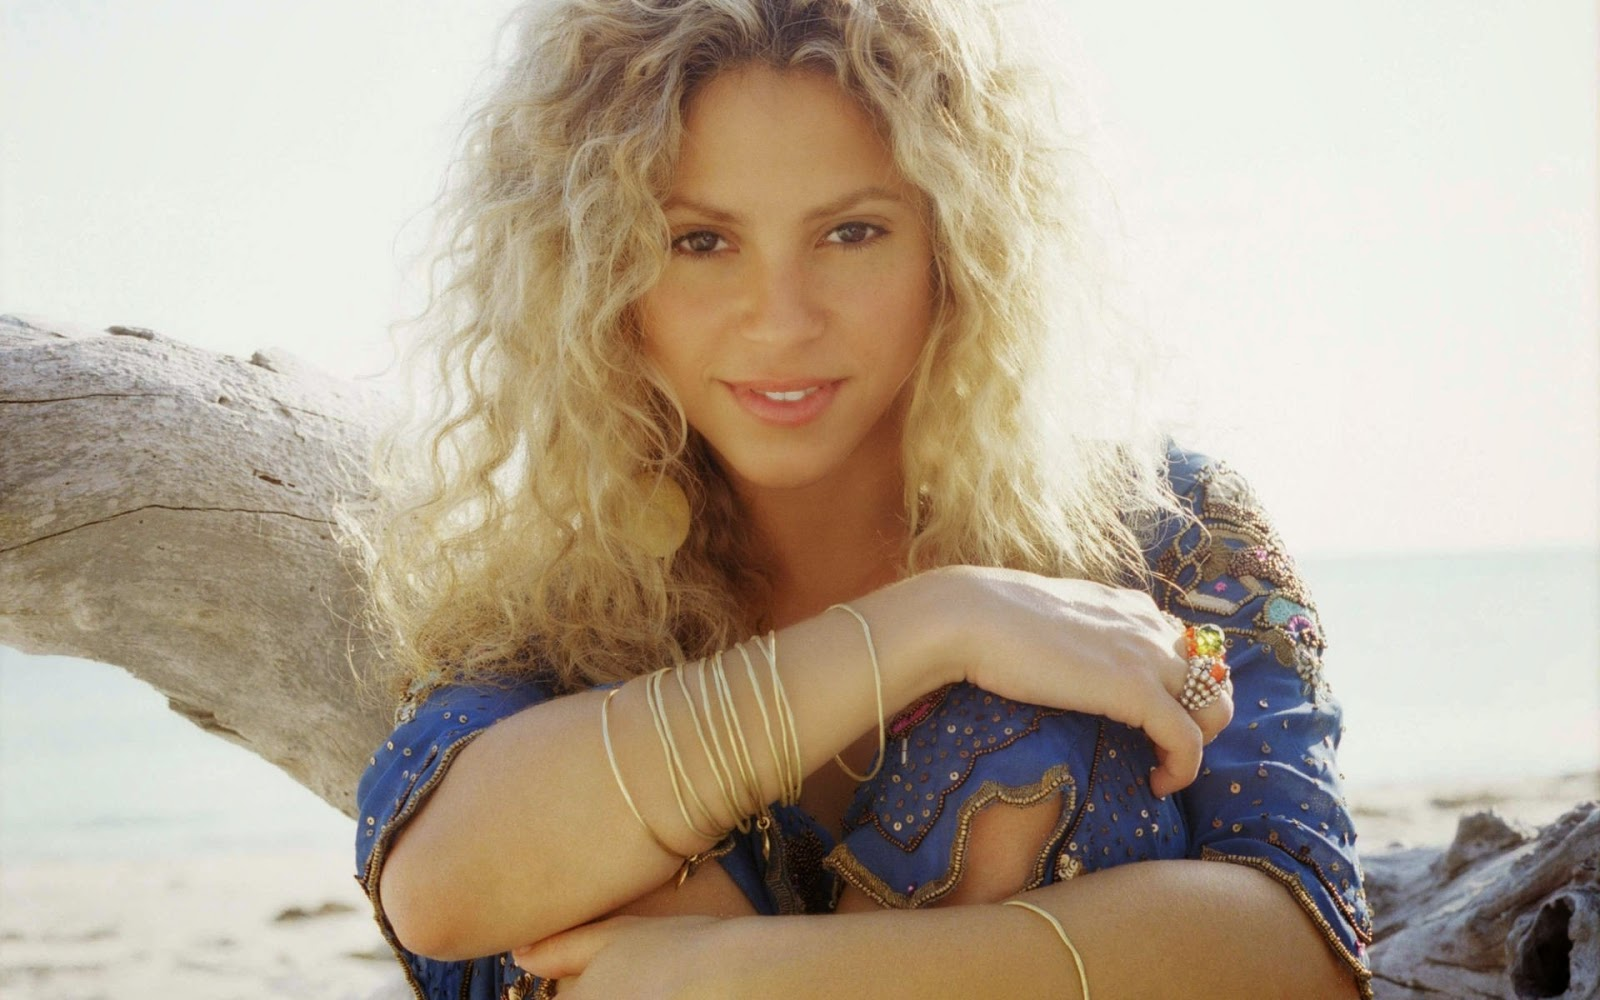 global pictures gallery: shakira isabel mebarak ripoll full hd wallpaers